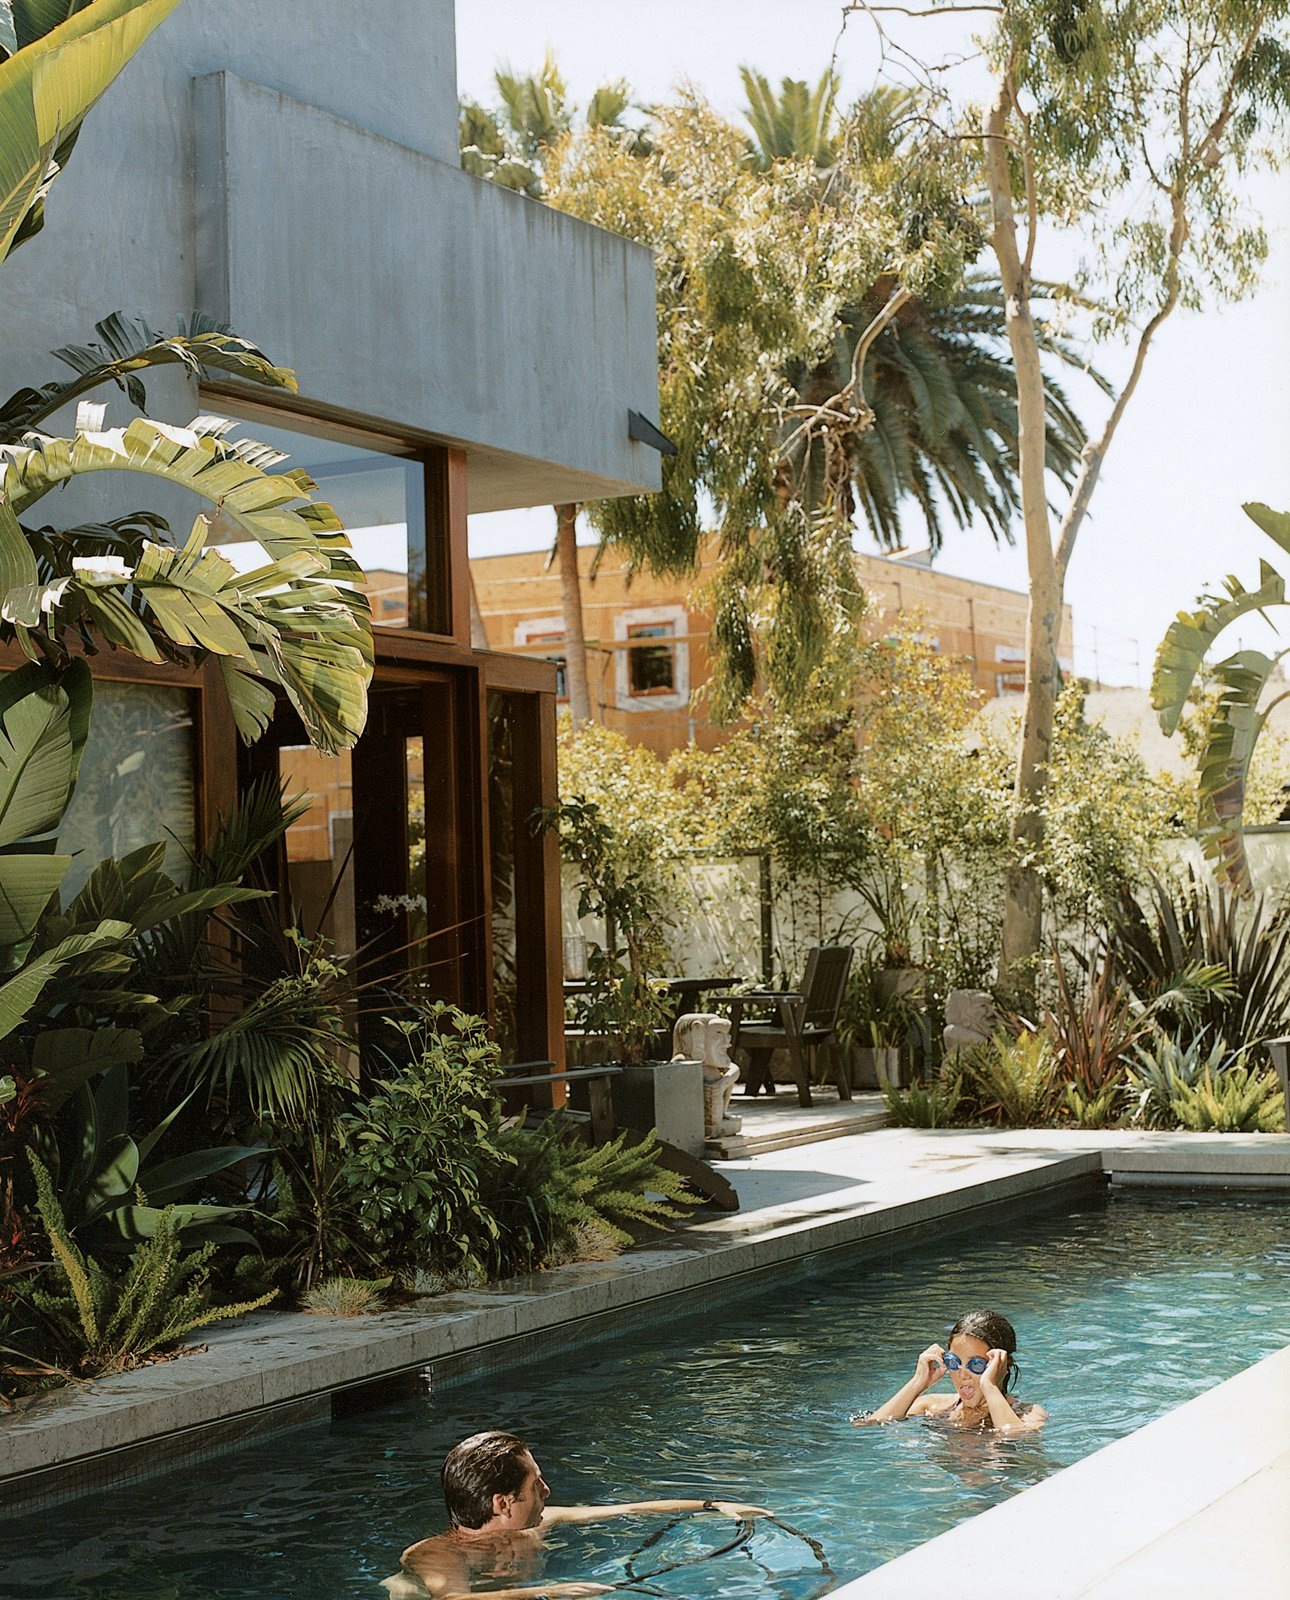 Sophie and Colin enjoy their new pool, the only non-solar-powered portion of their home in Venice, California, created by their father, architect David Hertz. Read the full article here.  Photo 4 of 6 in Sustainability in Stages